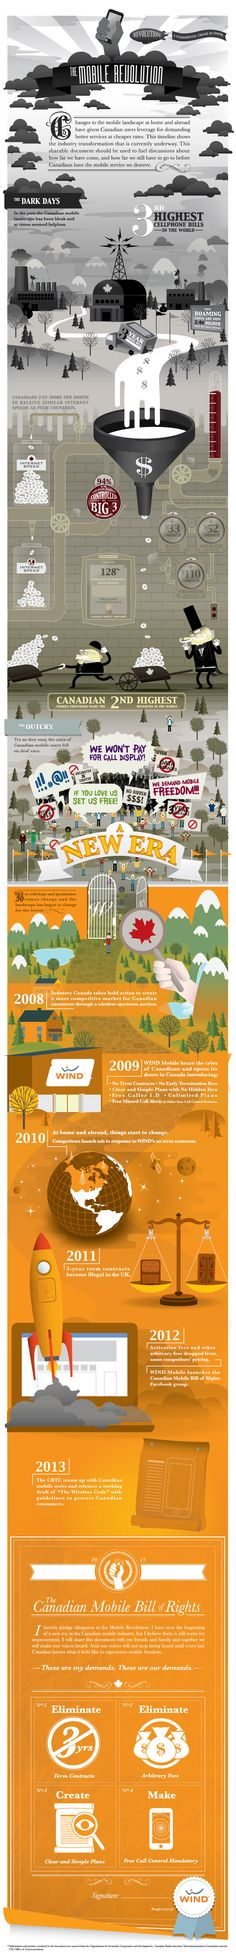 WIND Mobile Infographic - The Mobile Revolution: The Canadian Mobile Bill of Rights.